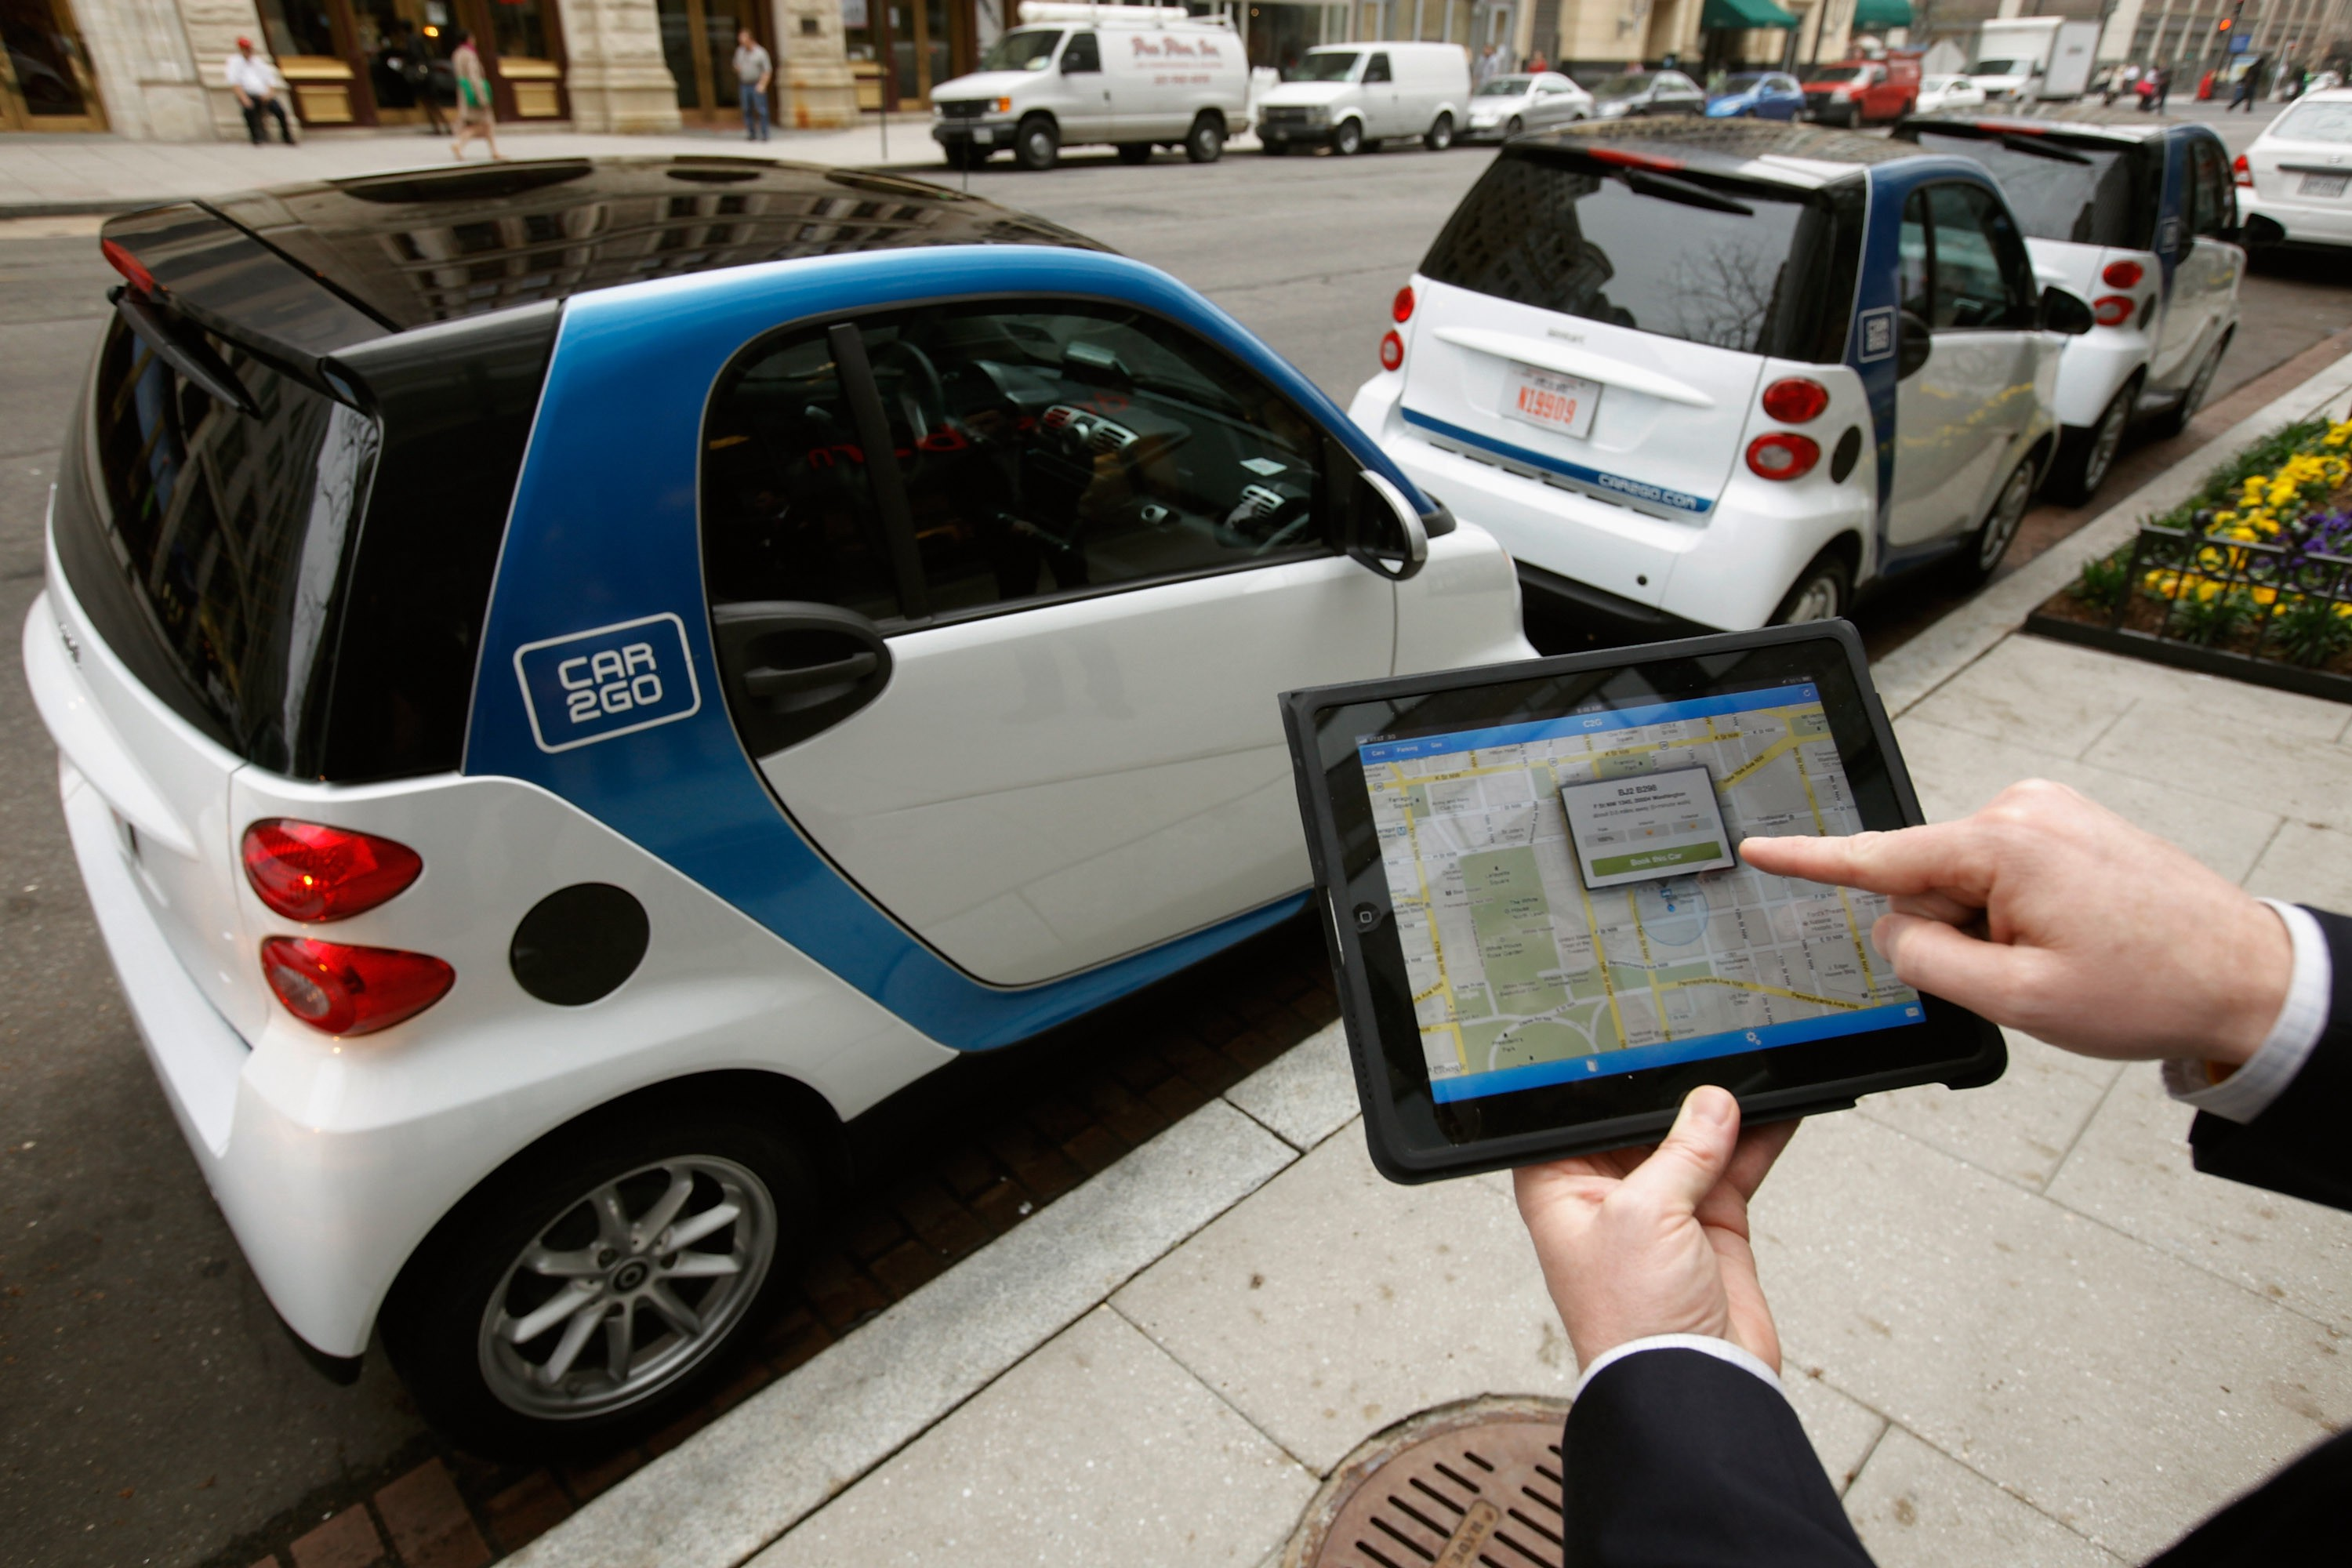 An Elegy For Car2go The Smarter Zipcar Rival That Lost Its Way